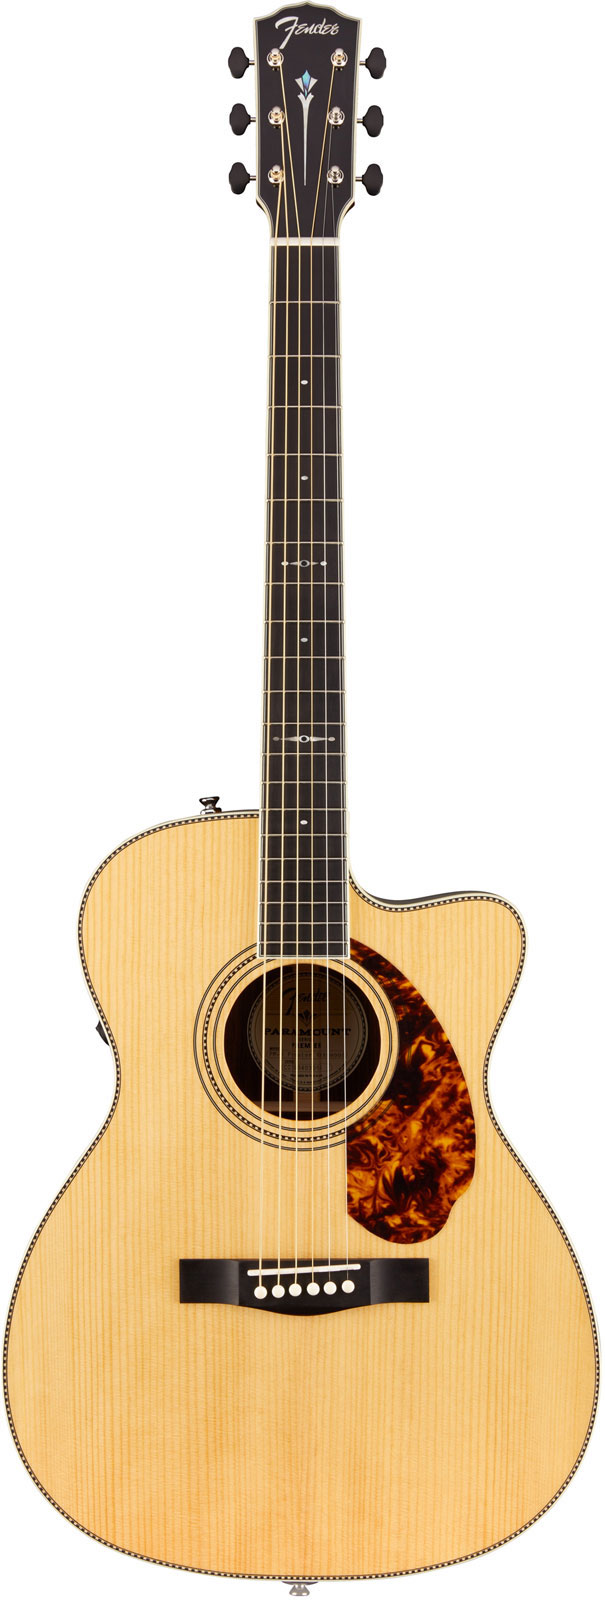 FENDER PM-3 LIMITED EDITION ADIRONDACK TRIPLE-0 ROSEWOOD NATURAL